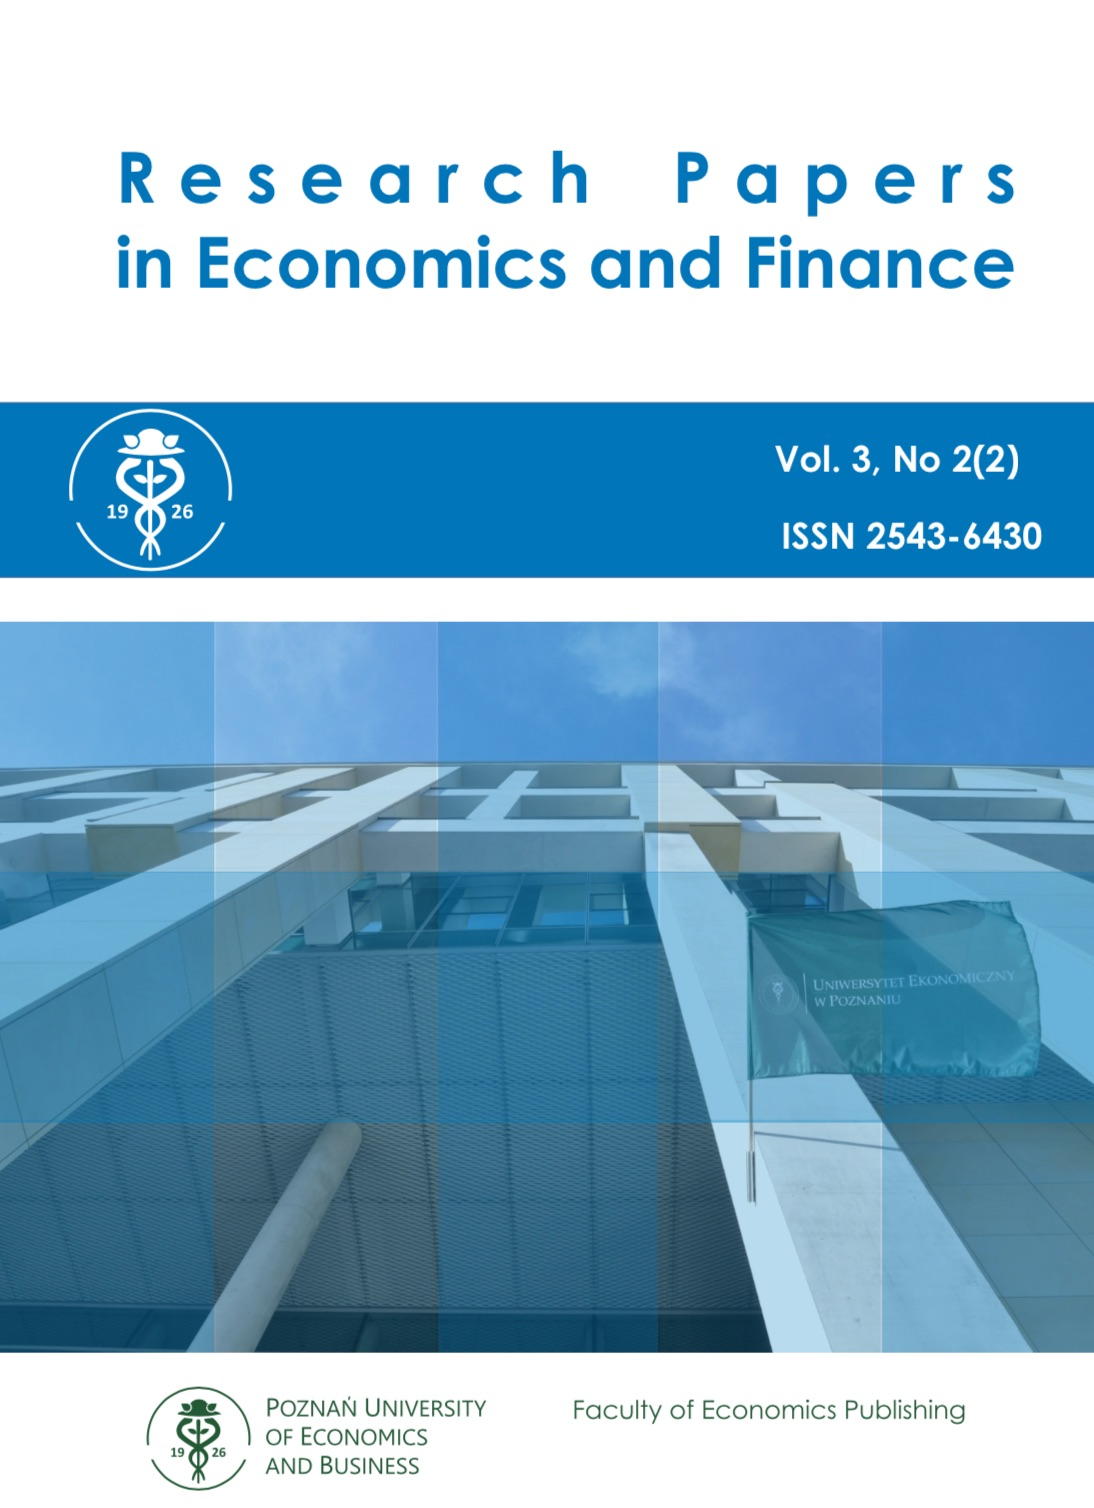 Research Papers in Economics and Finance, Vol. 3 No 2